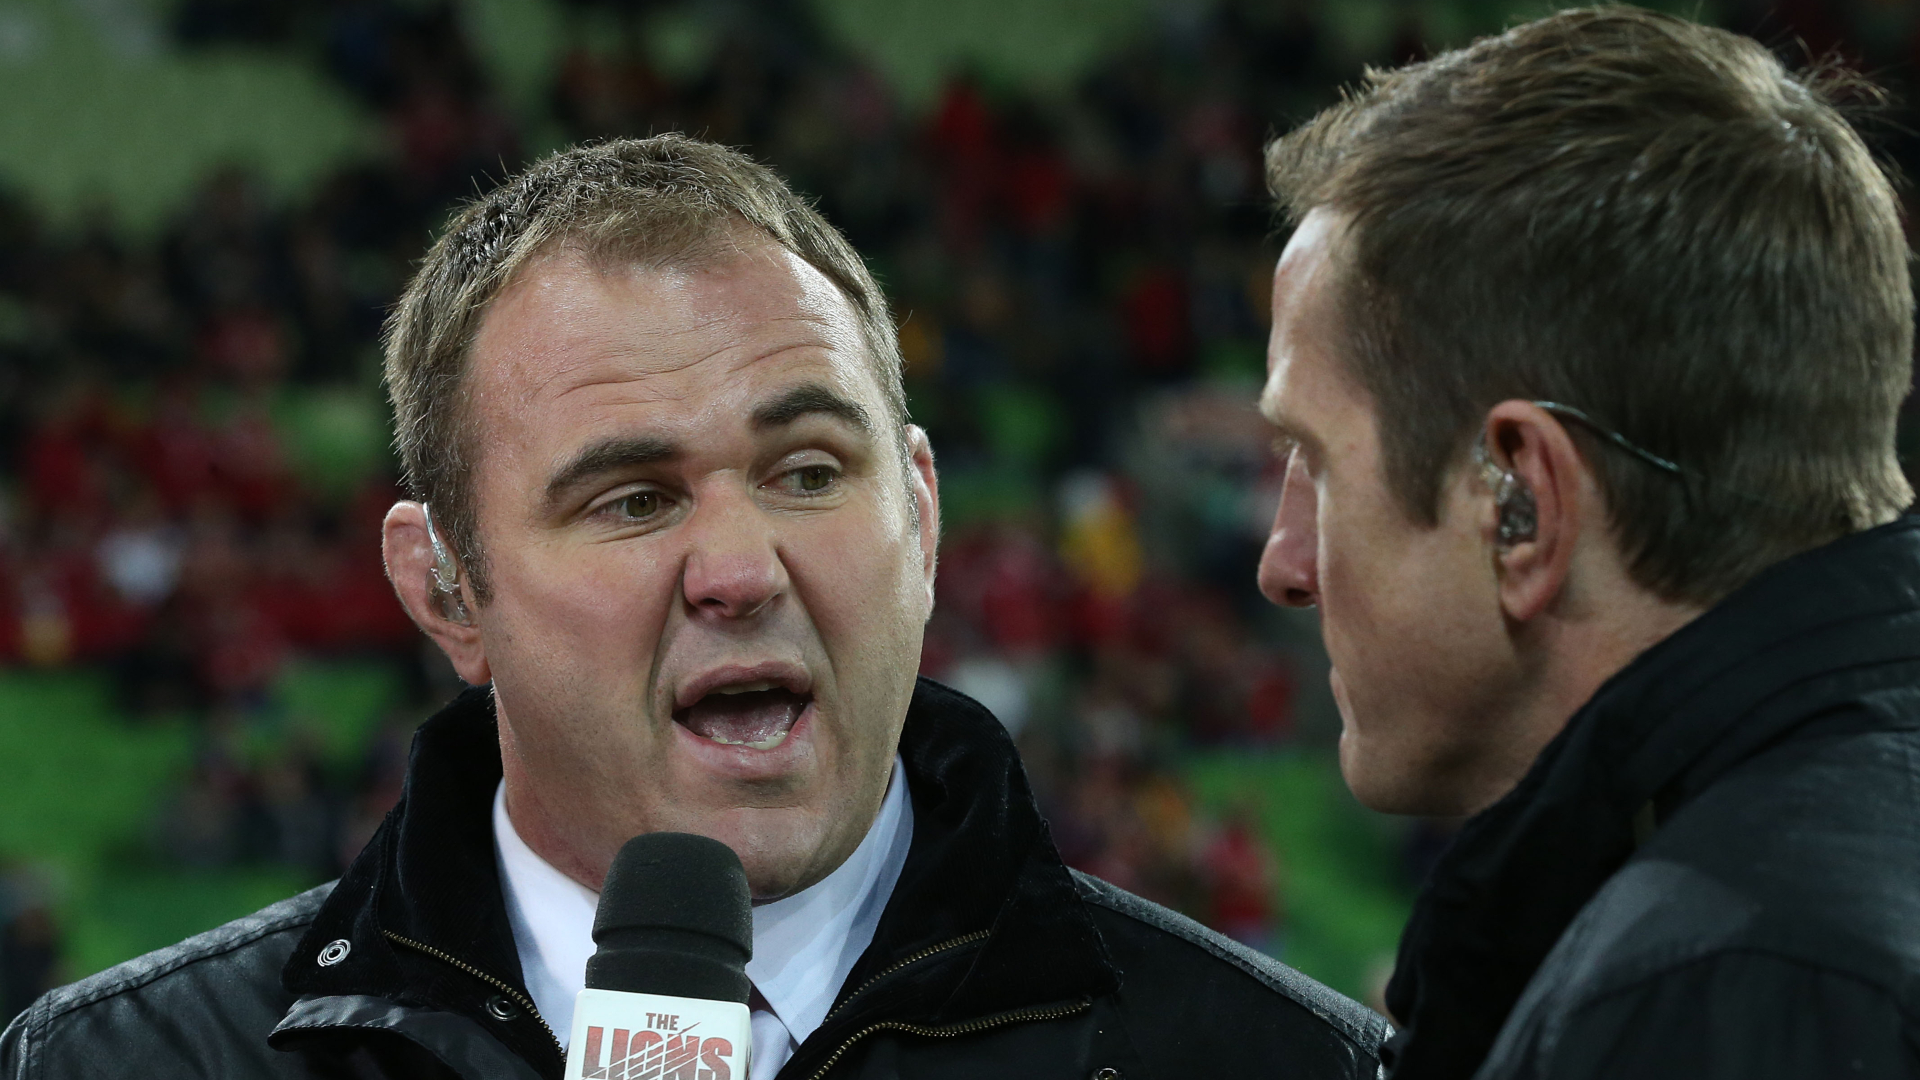 Scott Quinnell as a pundit in 2017